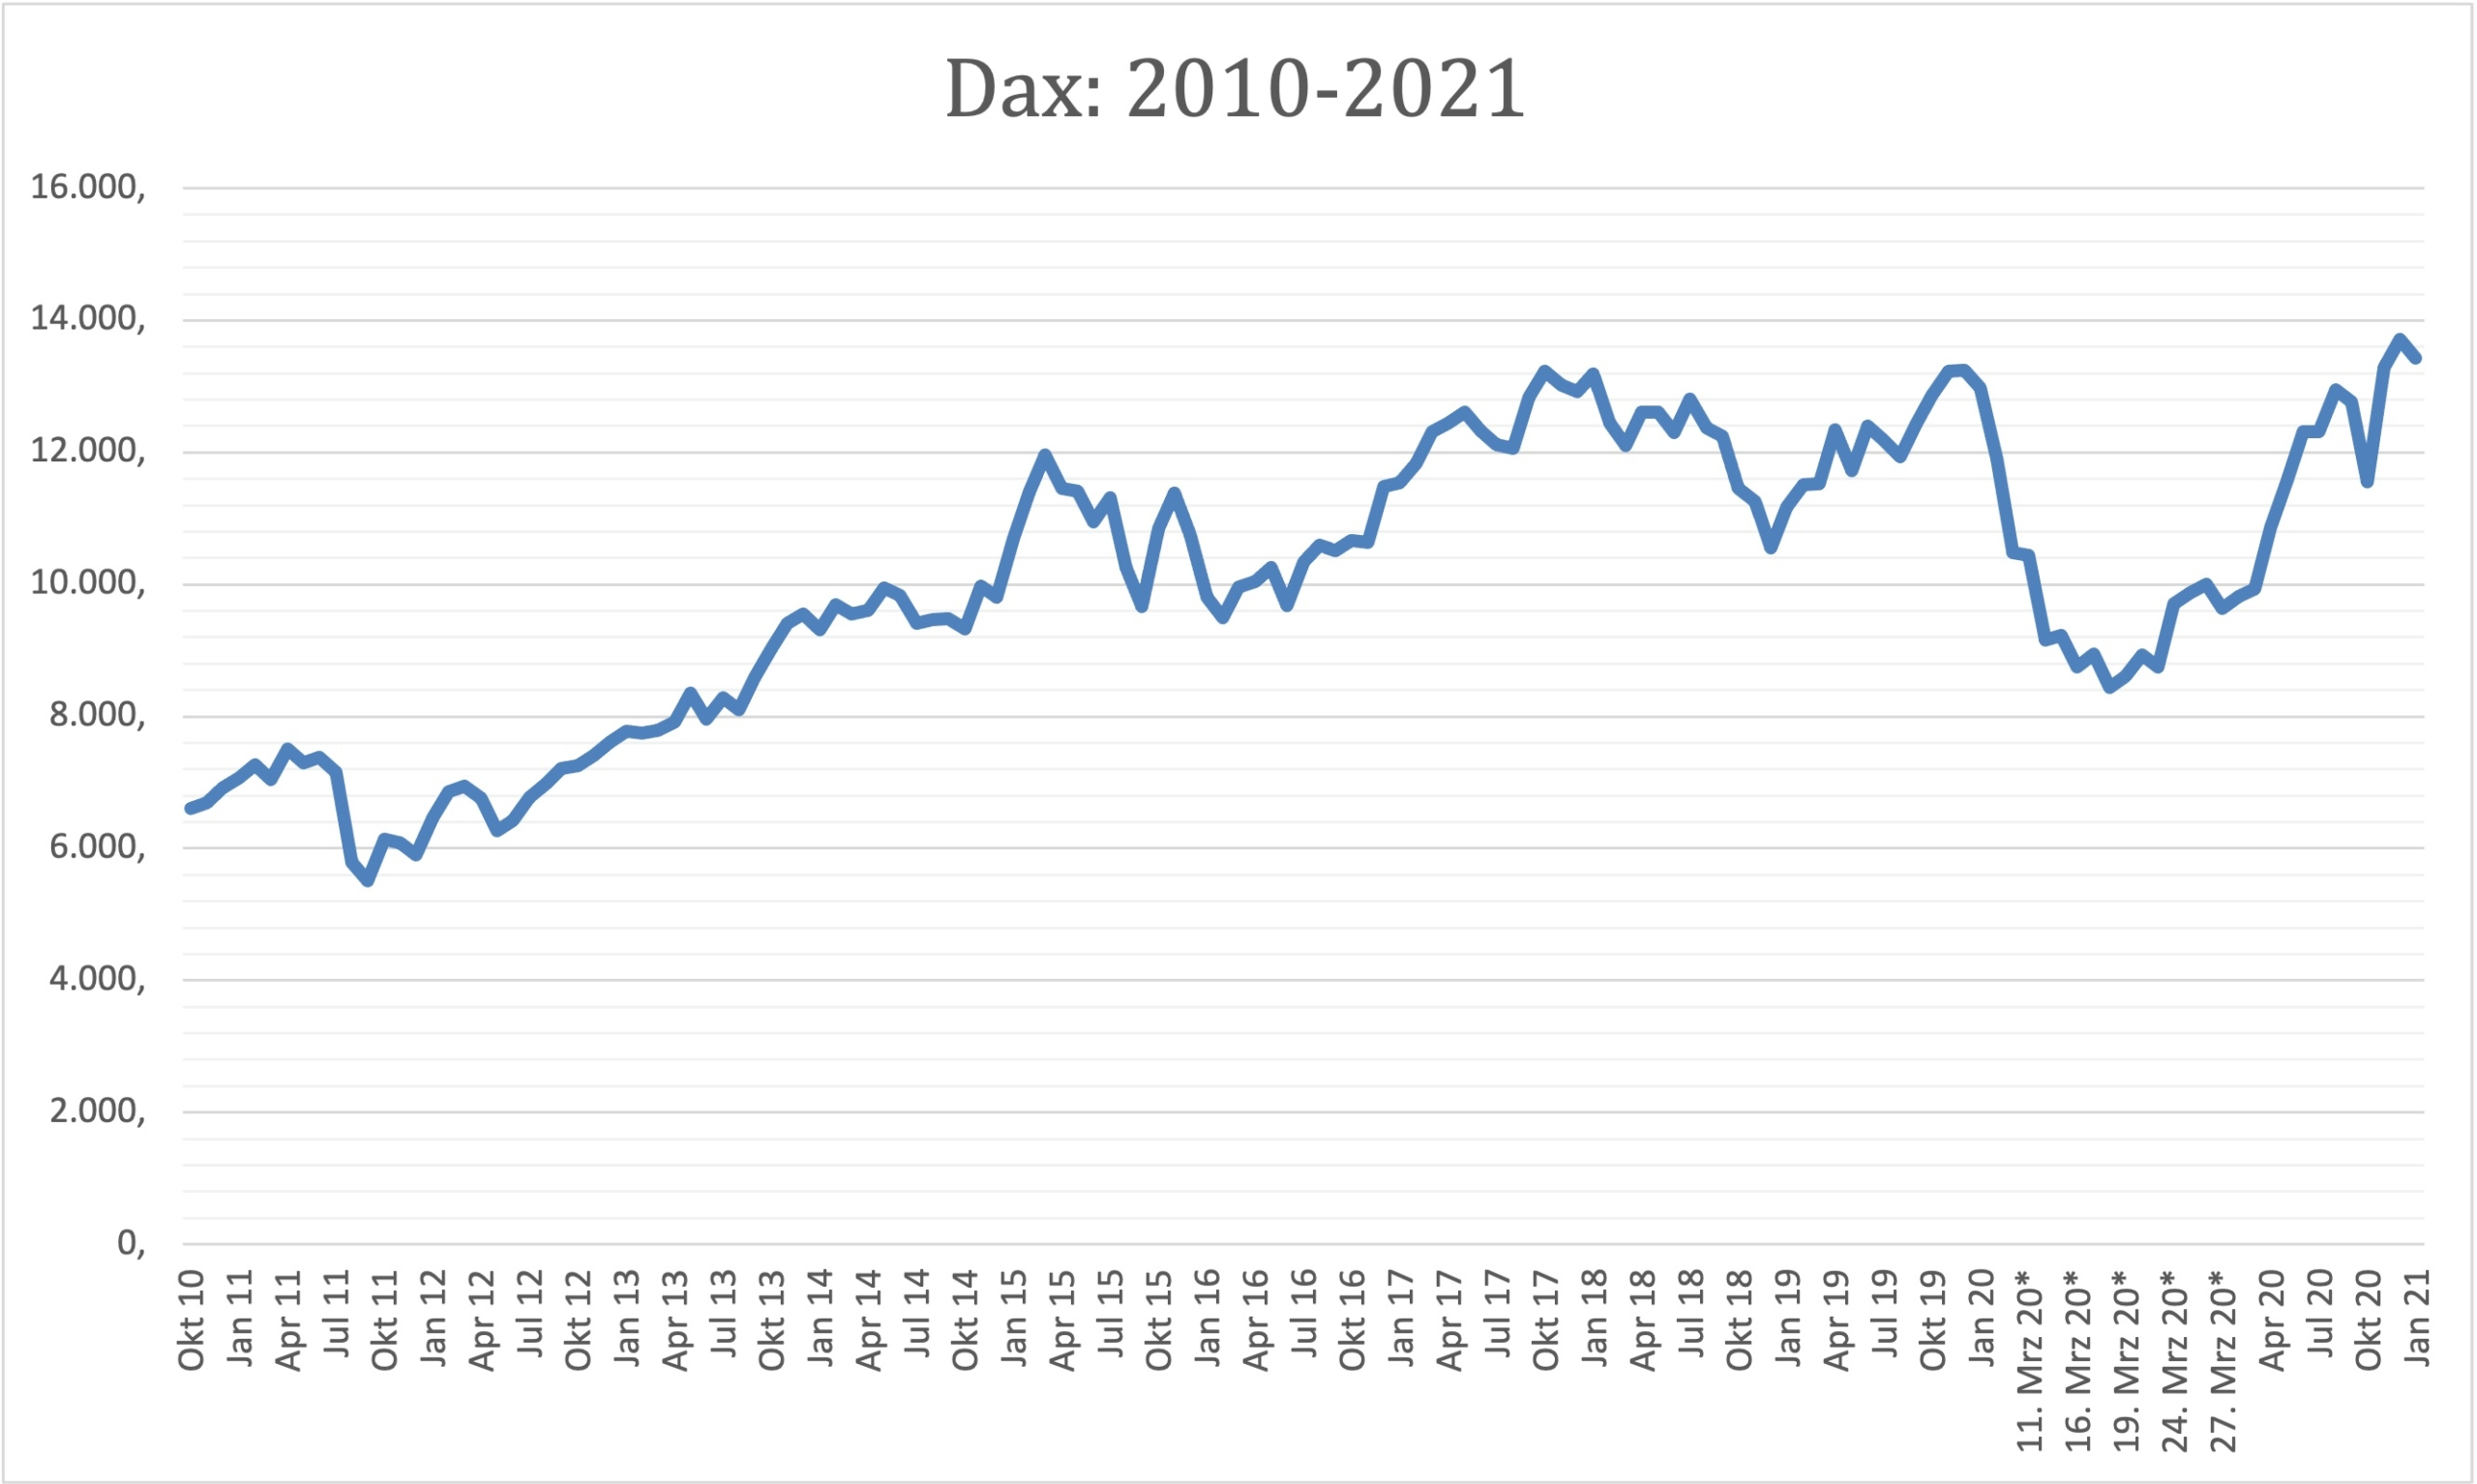 Development of DAX 2010_2021